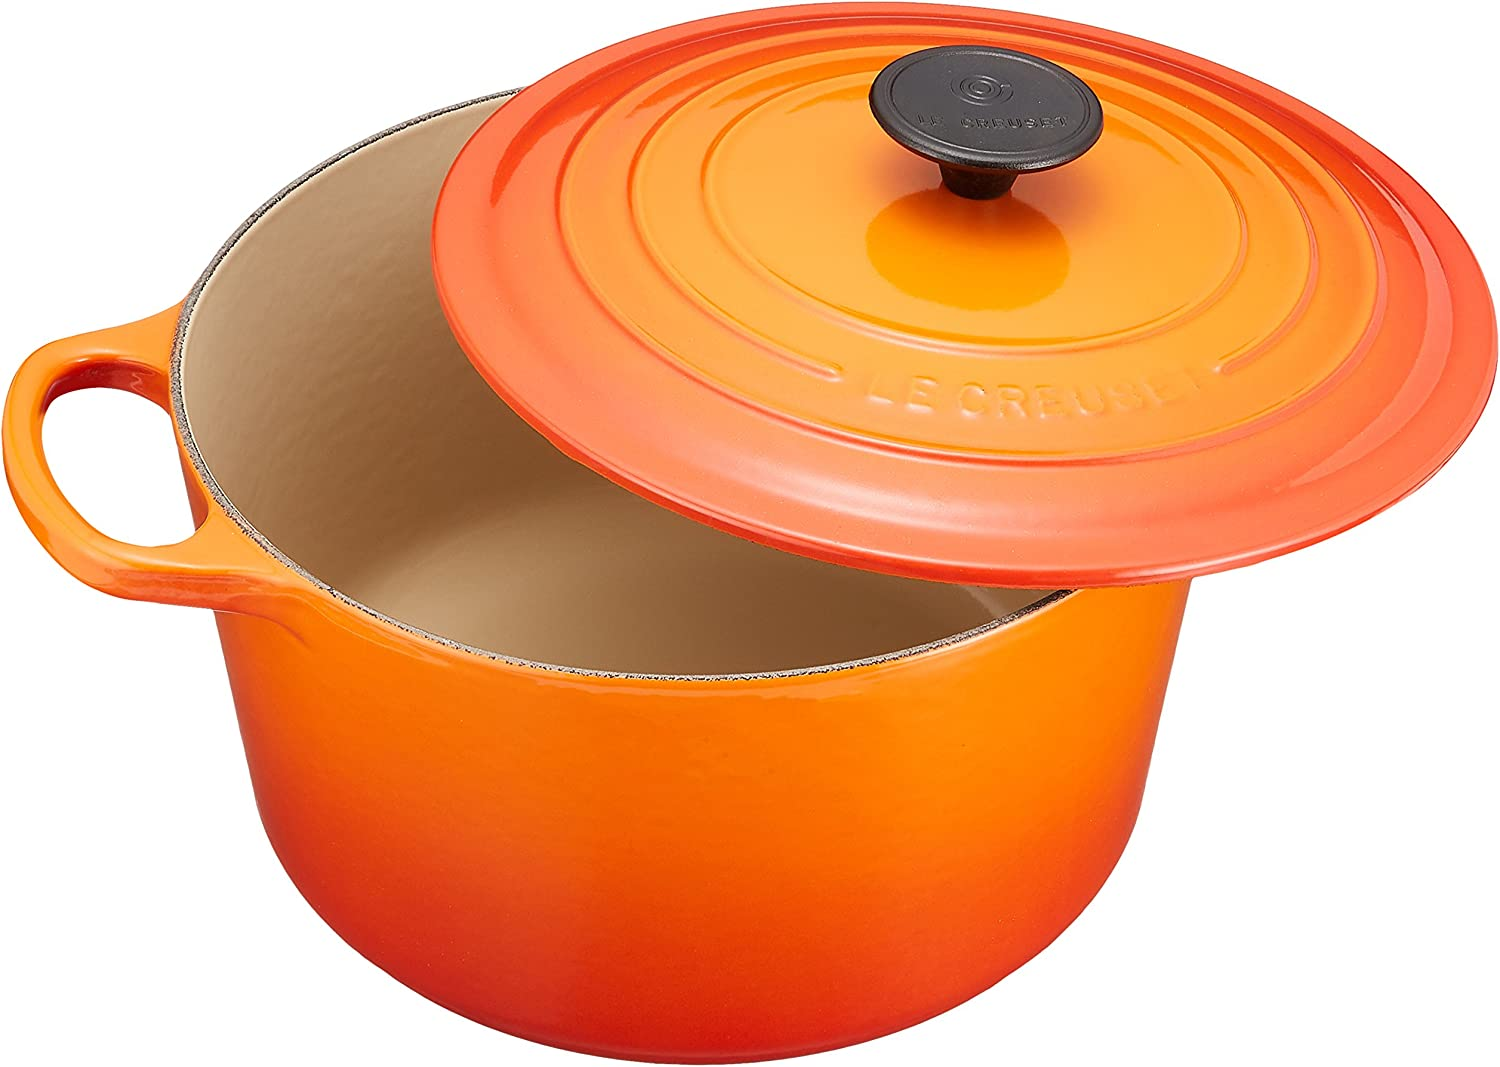 Le Creuset L2595-242 Enameled Cast Iron 5.25 quart Deep Round Dutch Oven, Flame